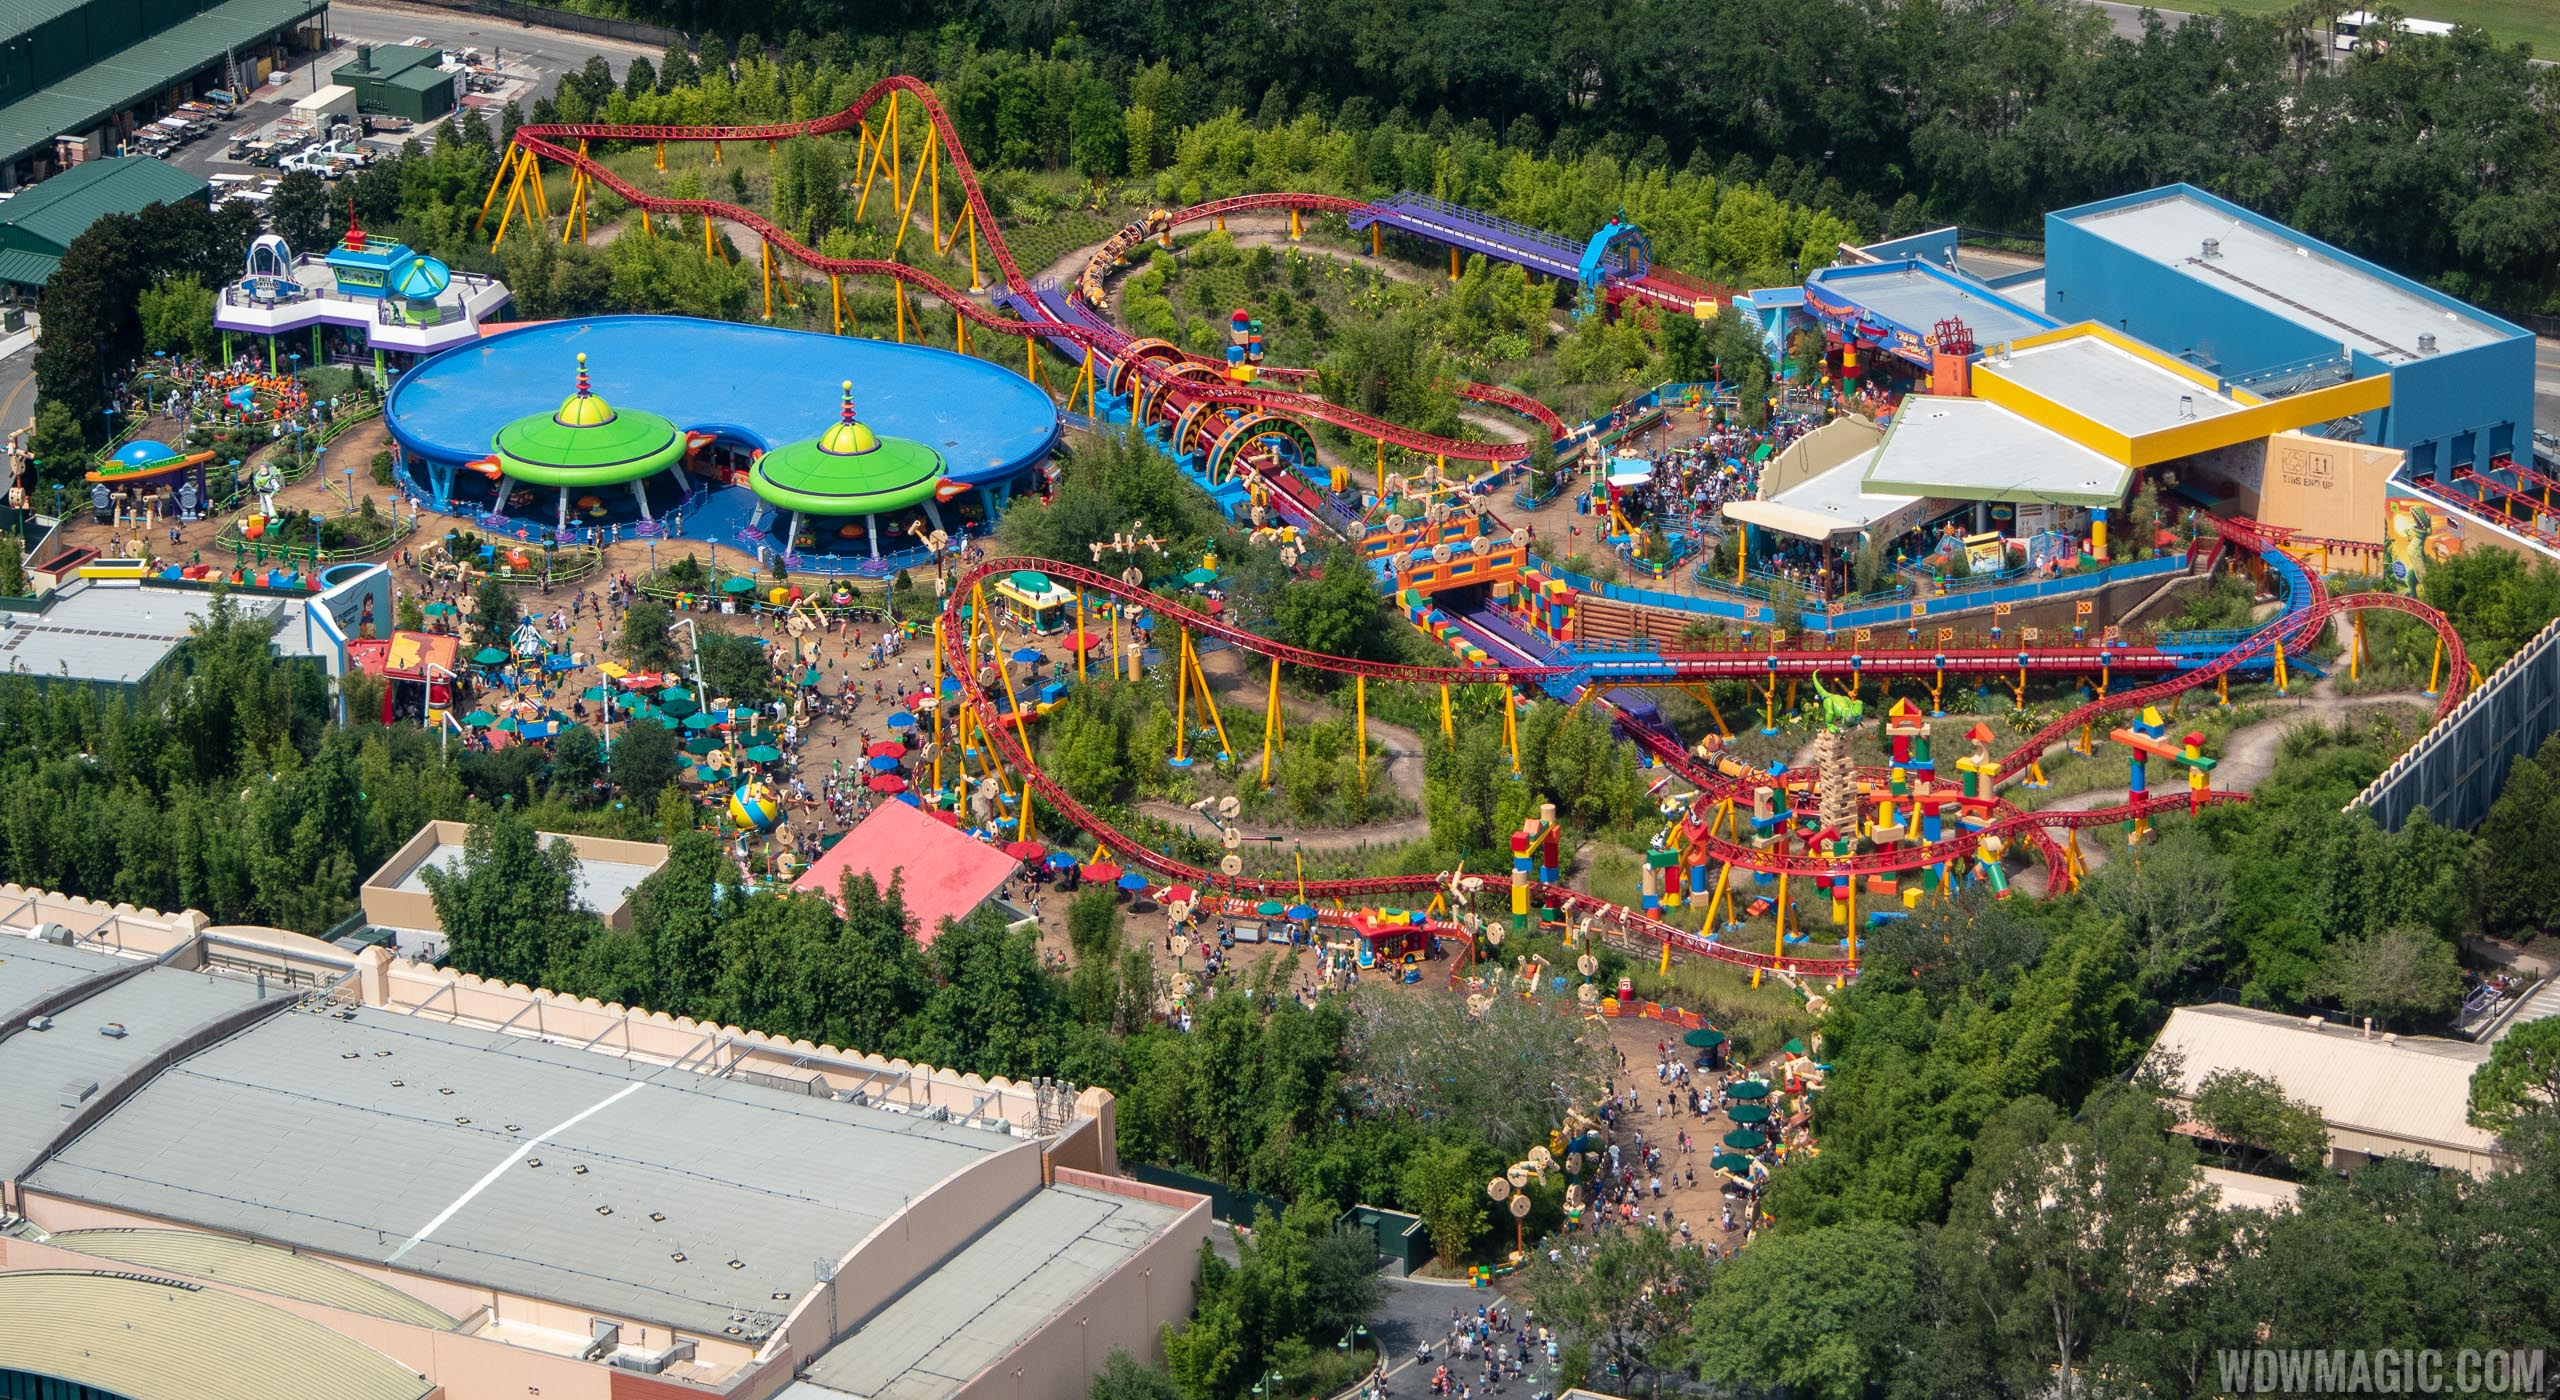 Aerial views of the completed Toy Story Land